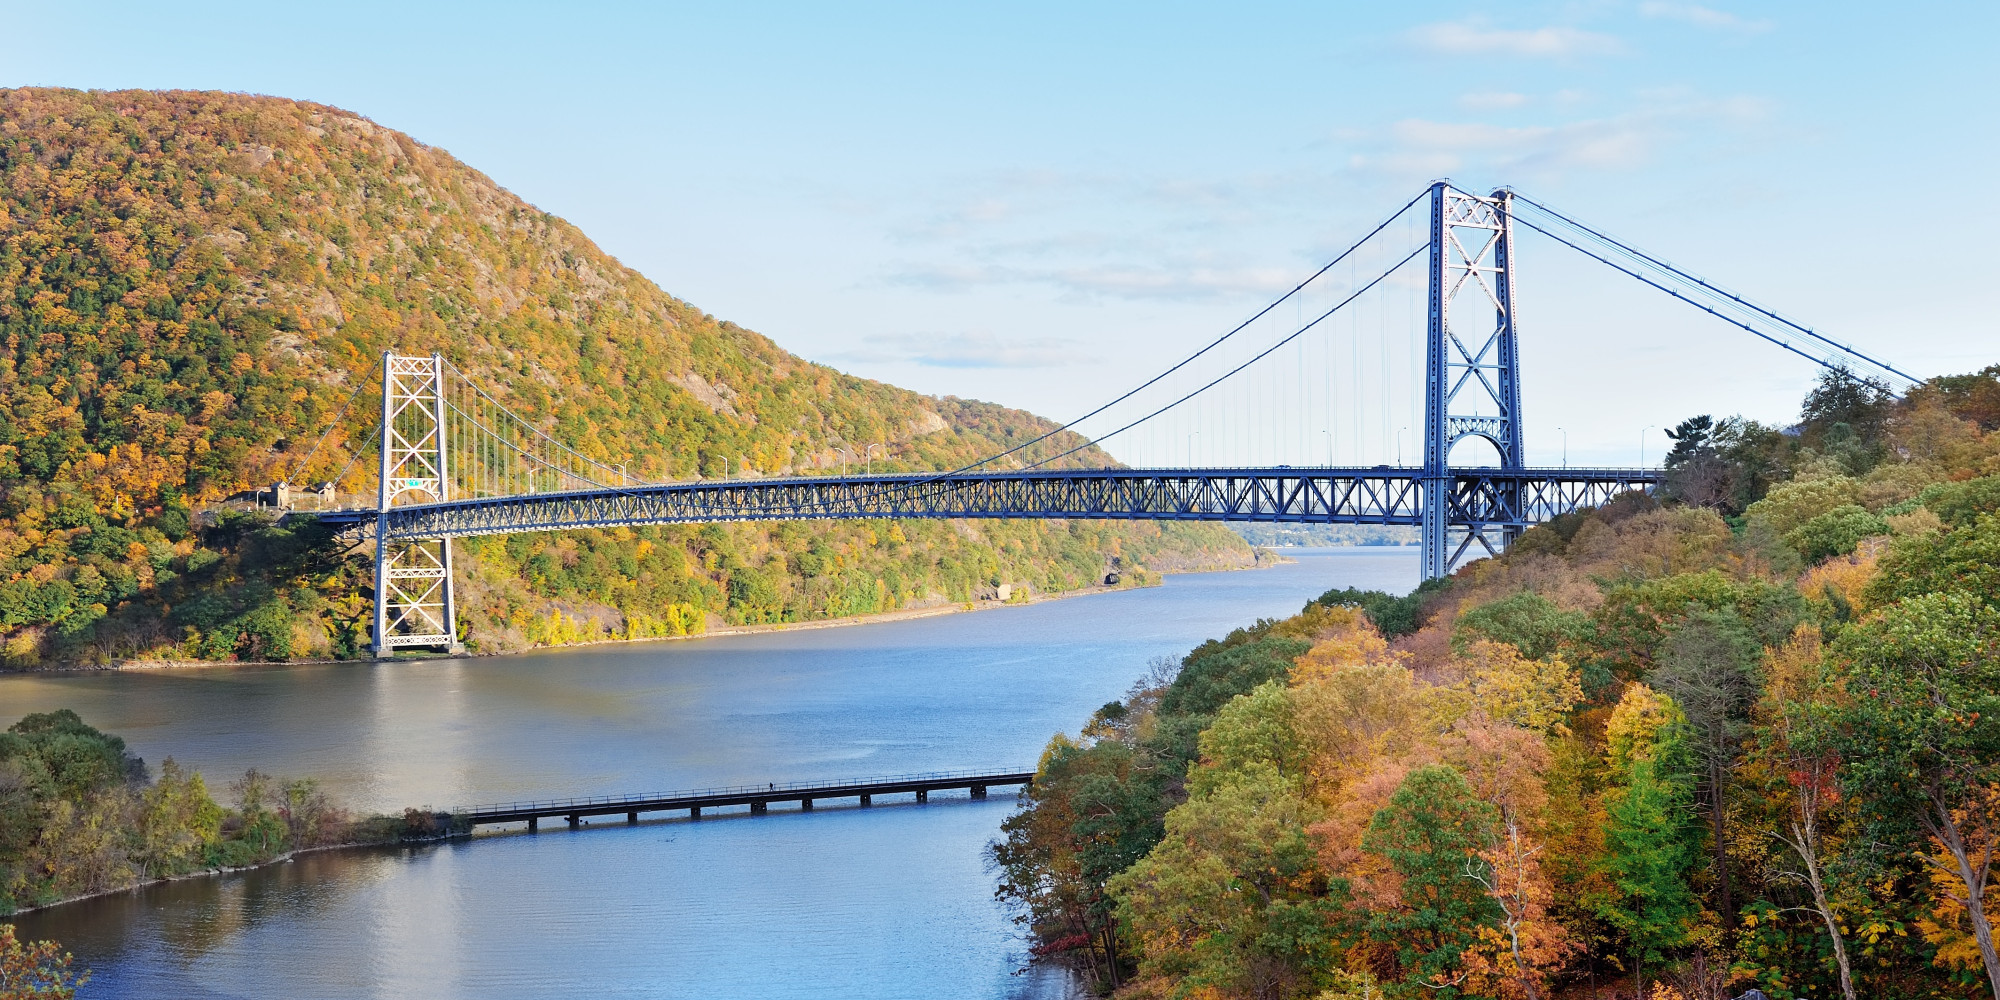 September festivals in the hudson valley hv contemporary for Things to do in hudson ny this weekend